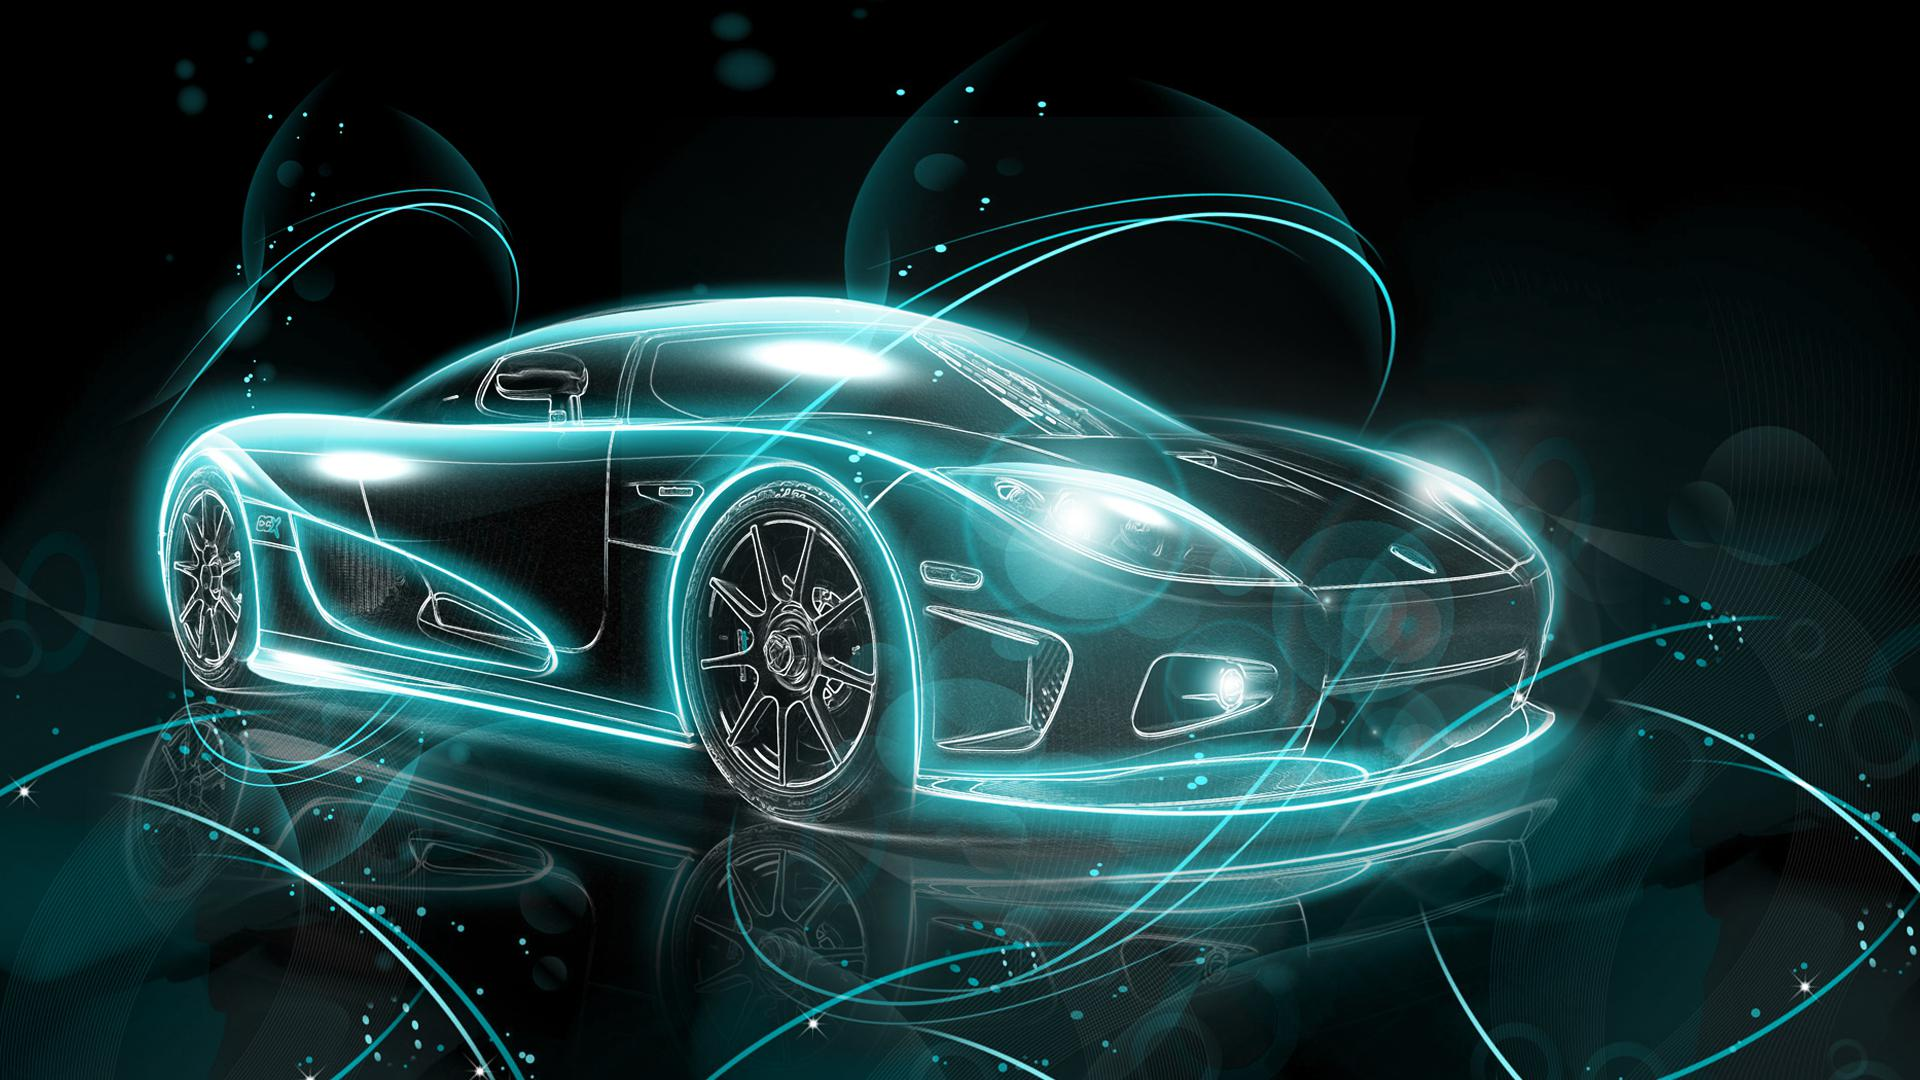 Car Neon Style   (#99314)   High Quality And Resolution Wallpapers On .